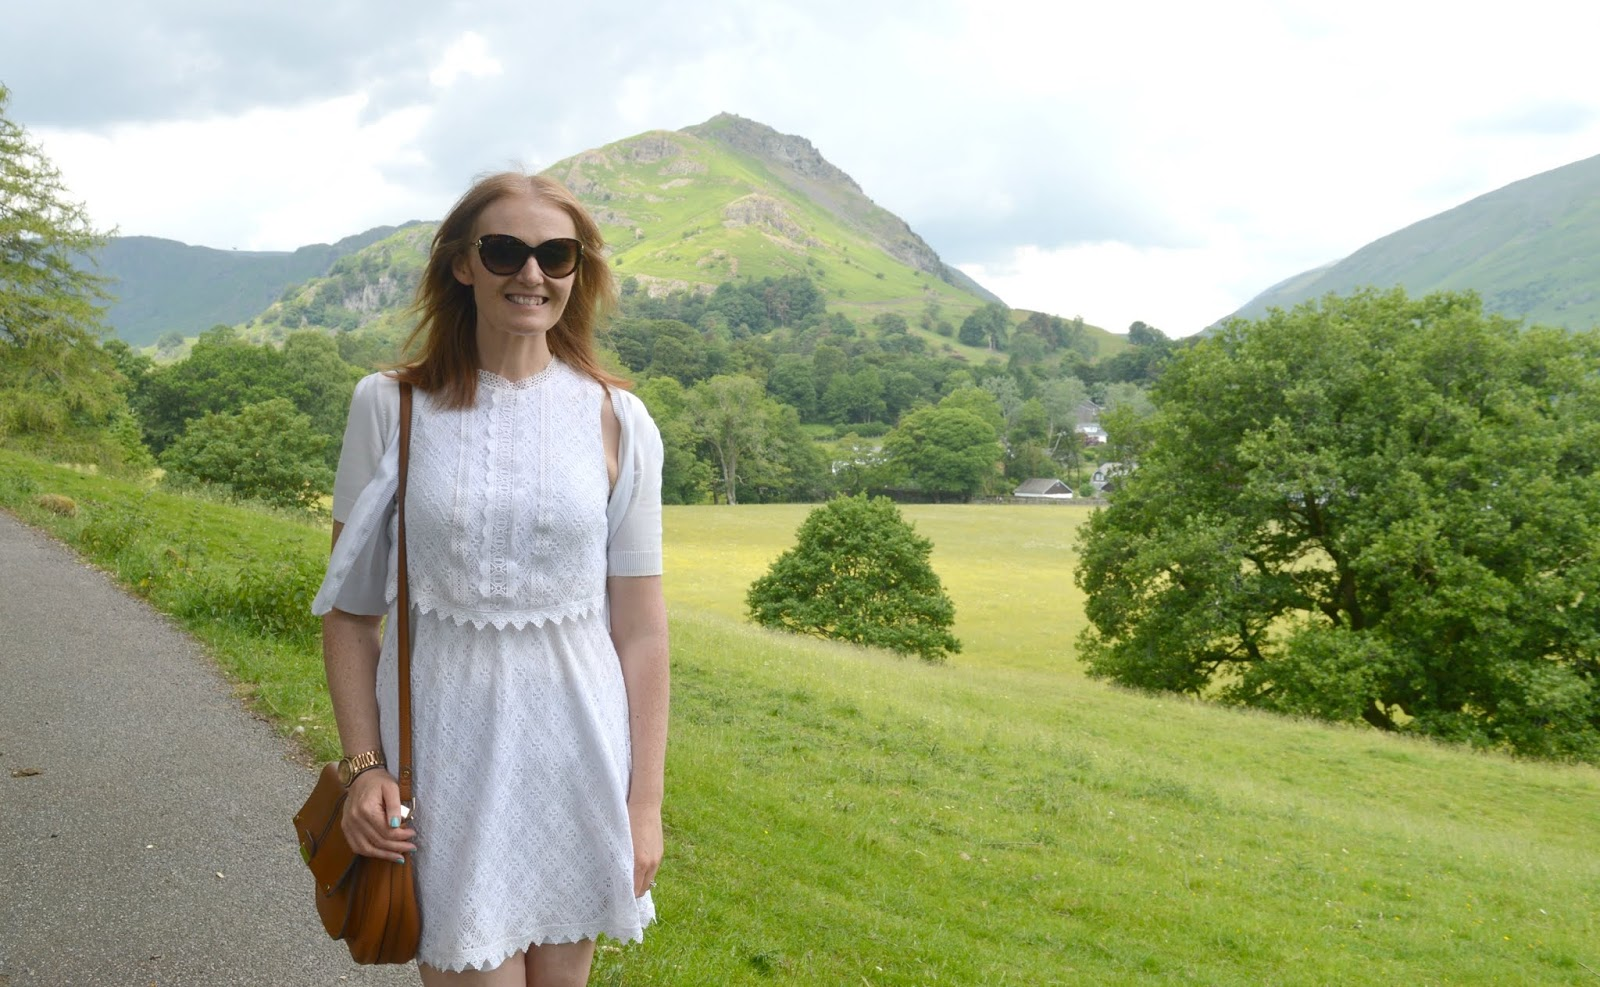 A Lake District Travel Guide - A Two Day Trip to the South Lakes